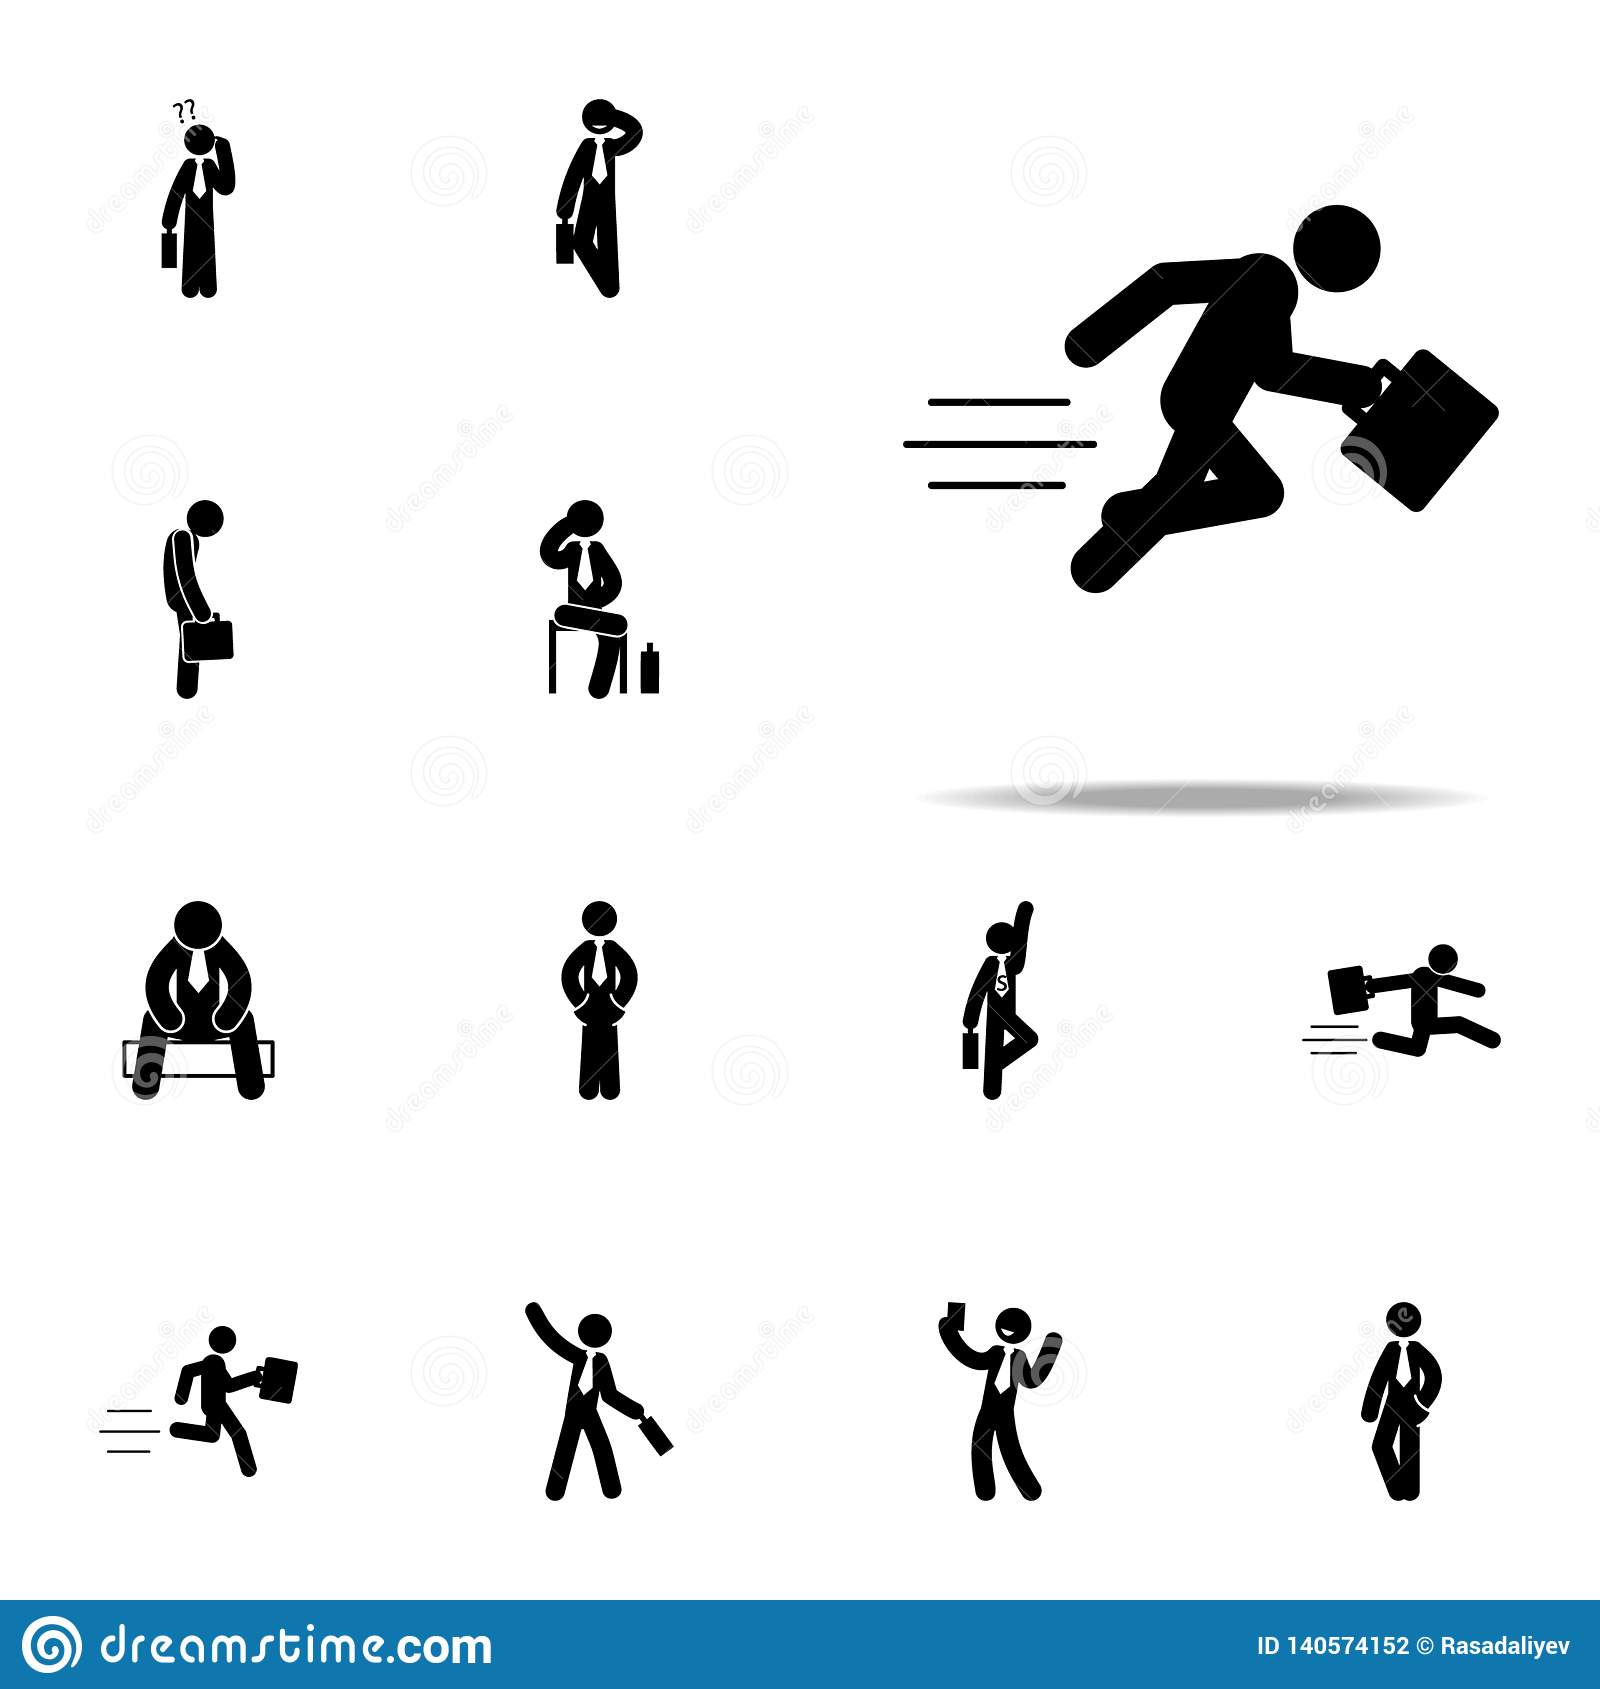 businessman, dashing, fast, running icon. Businessmen icons universal set for web and mobile